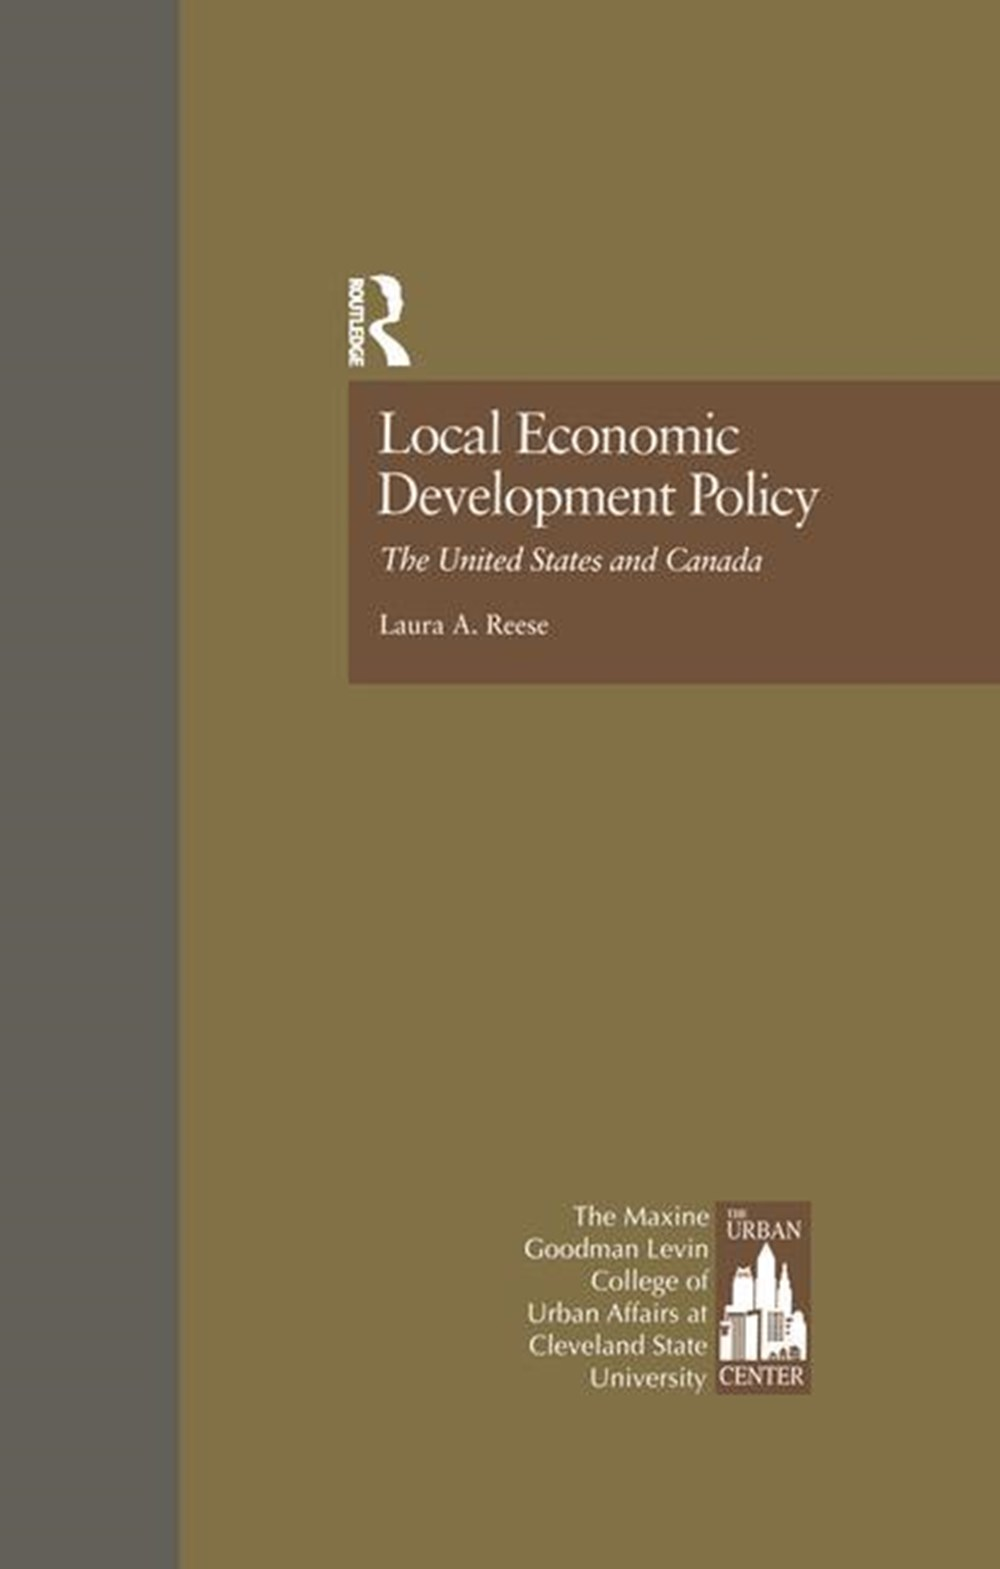 Local Economic Development Policy The United States and Canada